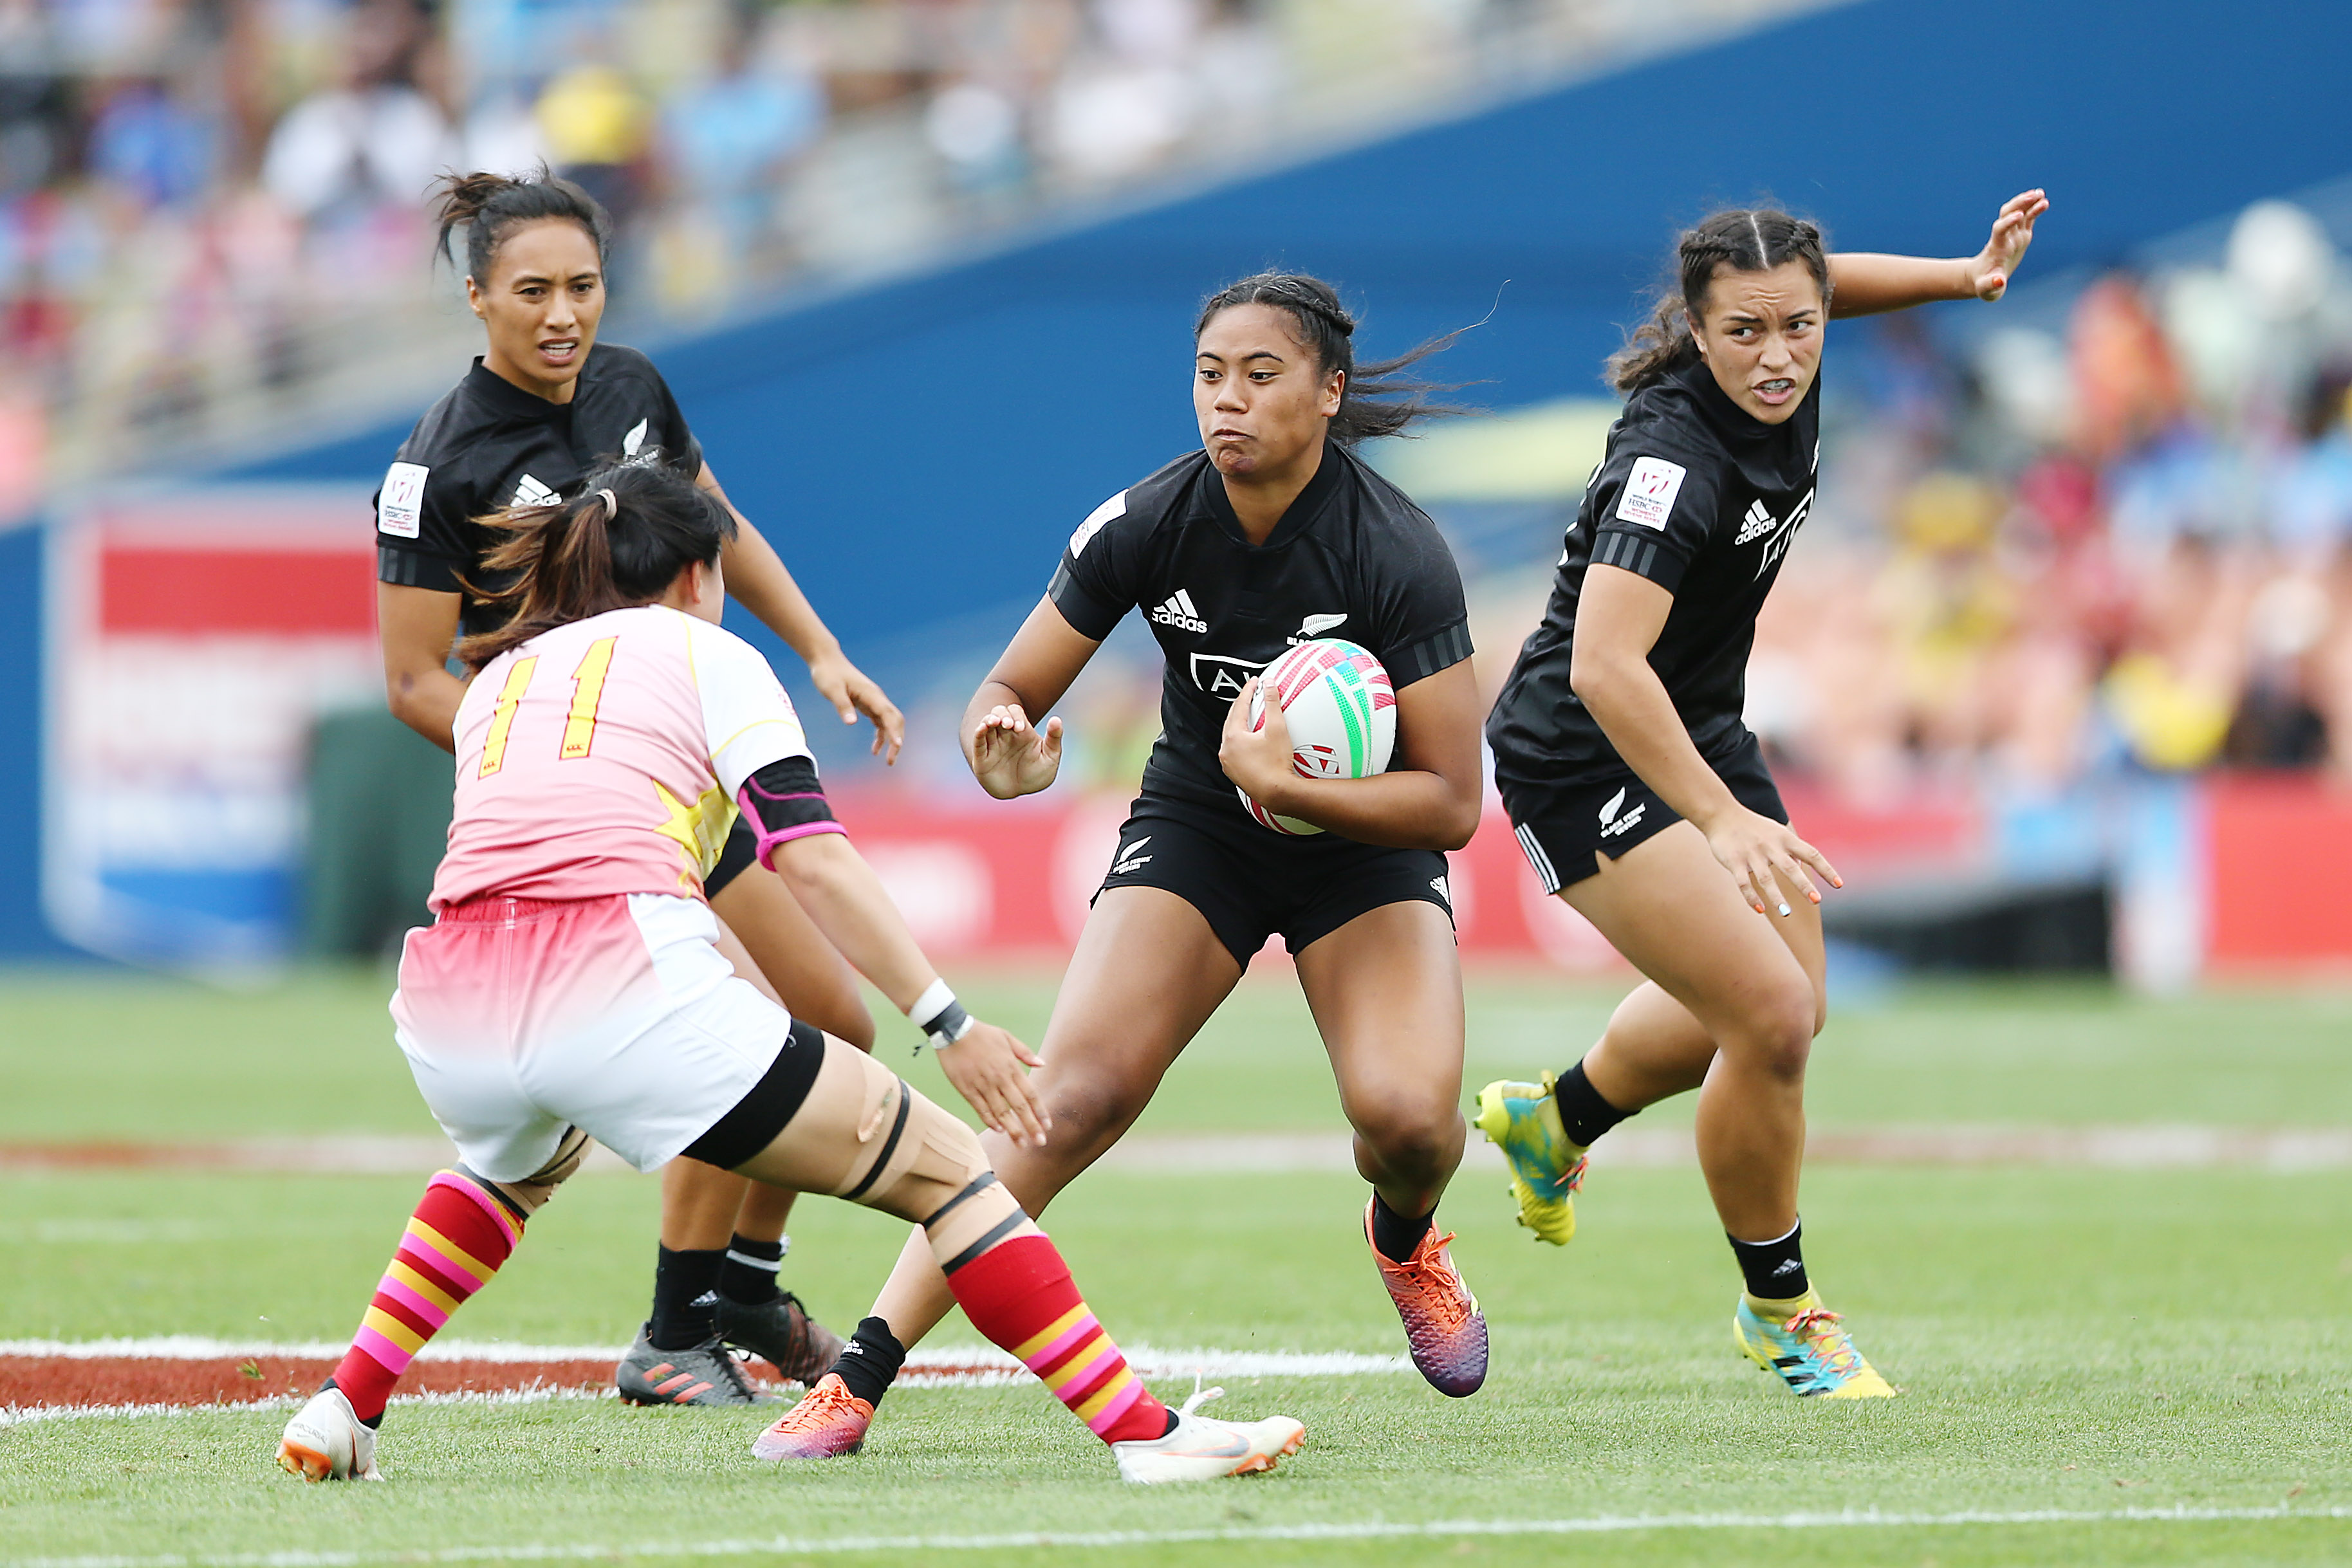 New partnership provides welcome boost to women's and Māori rugby